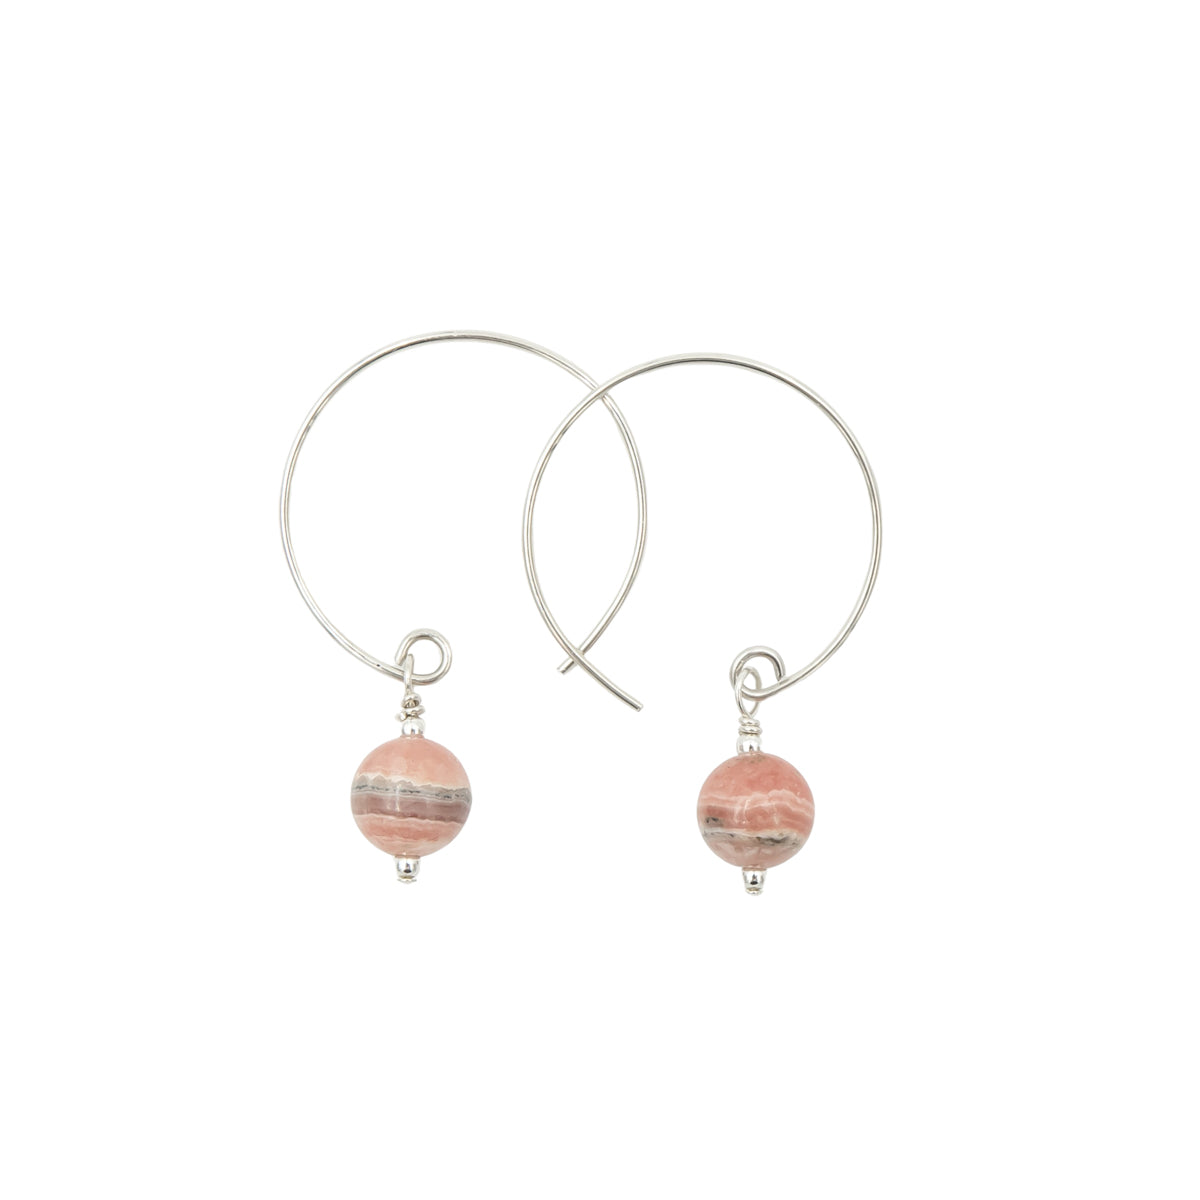 Earth Song Jewelry Handmade Earrings Collection - hoops style sterling silver and copper